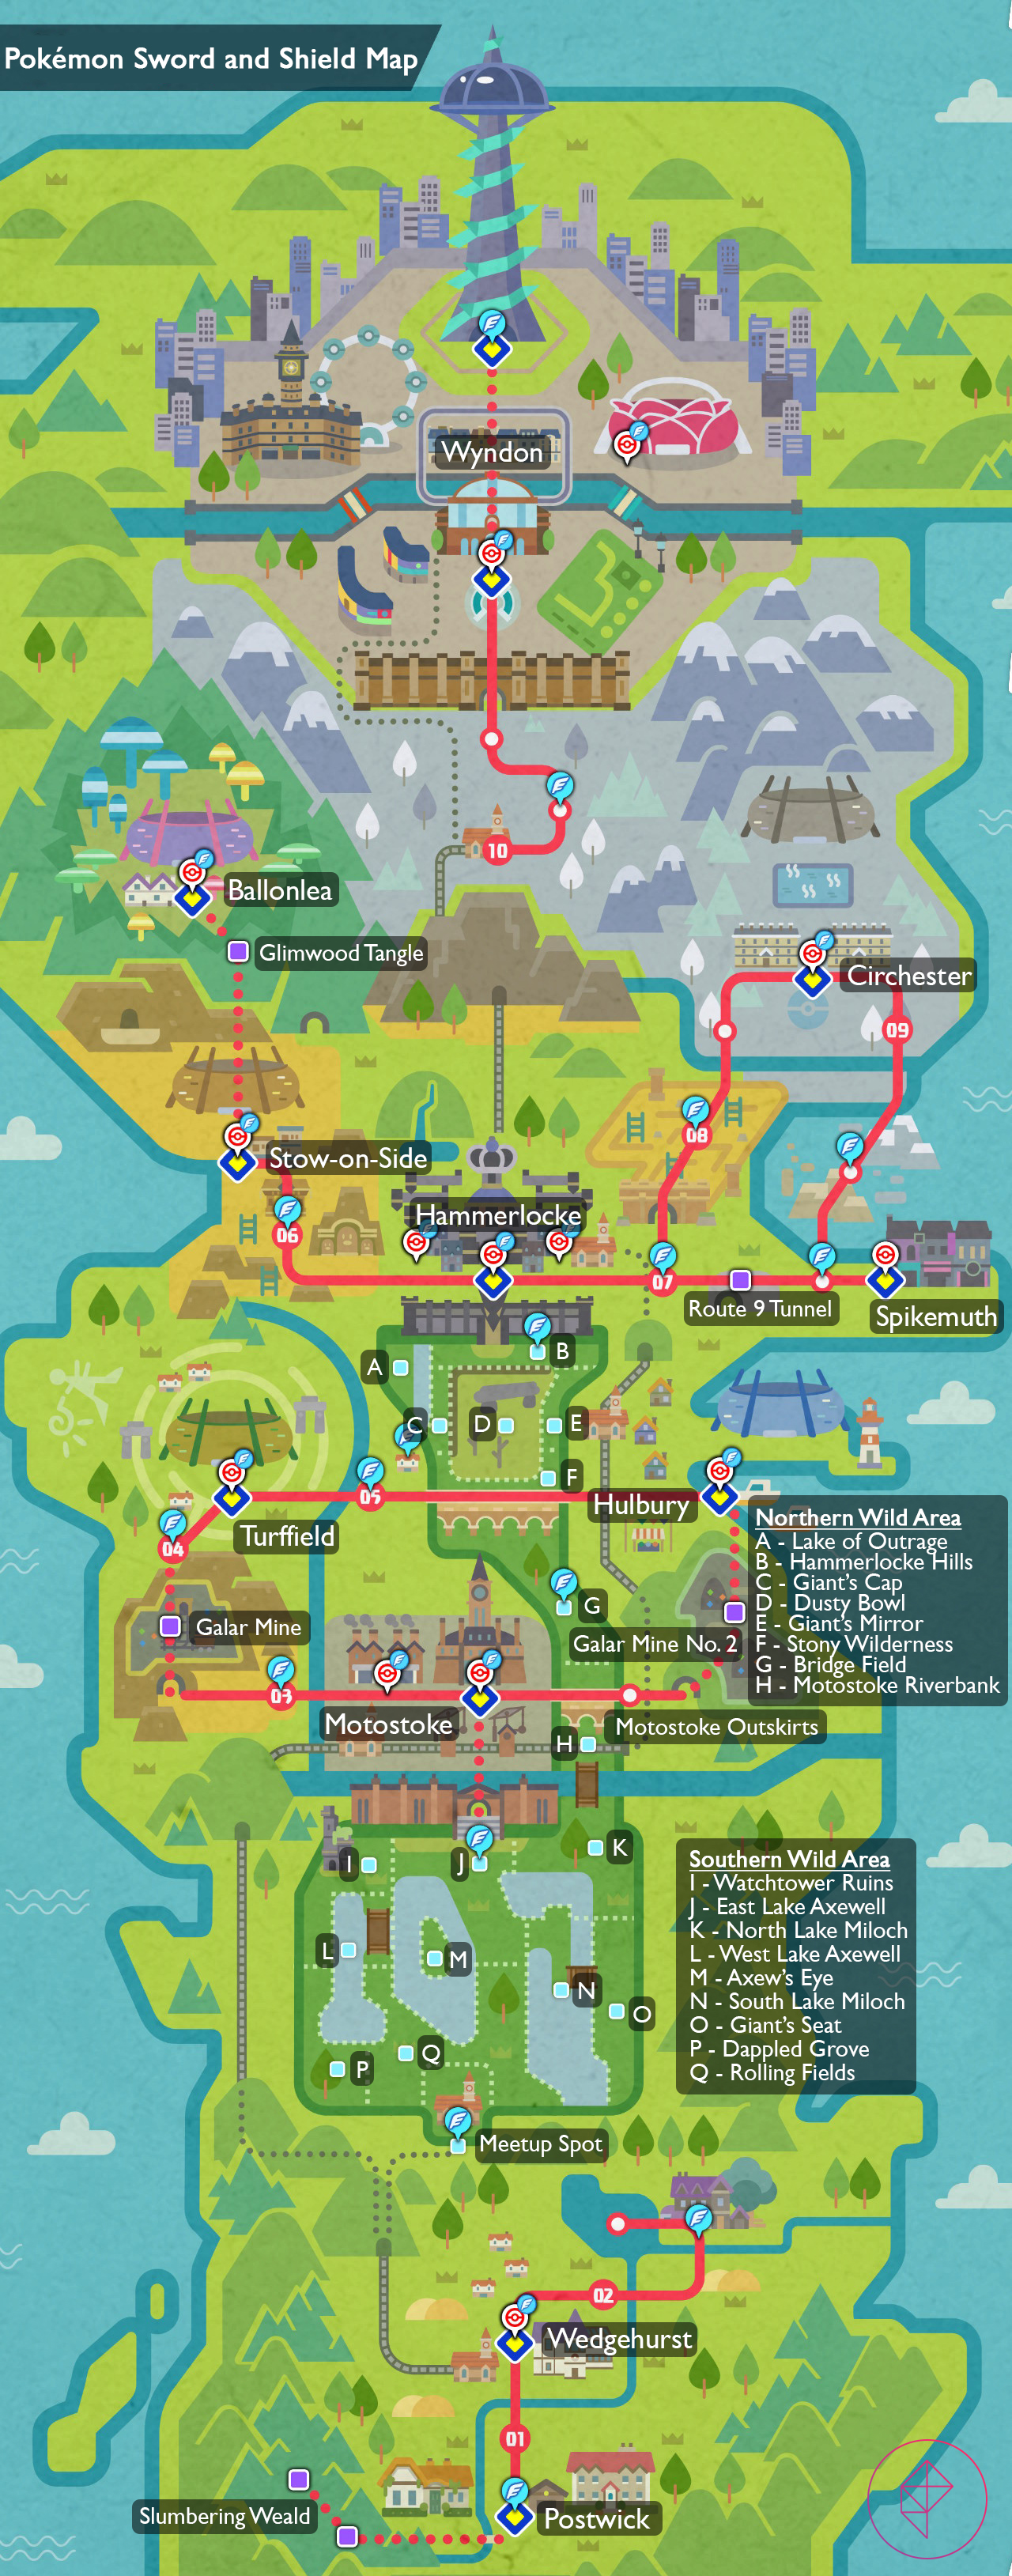 Pokémon Sword and Shield complete map and locations